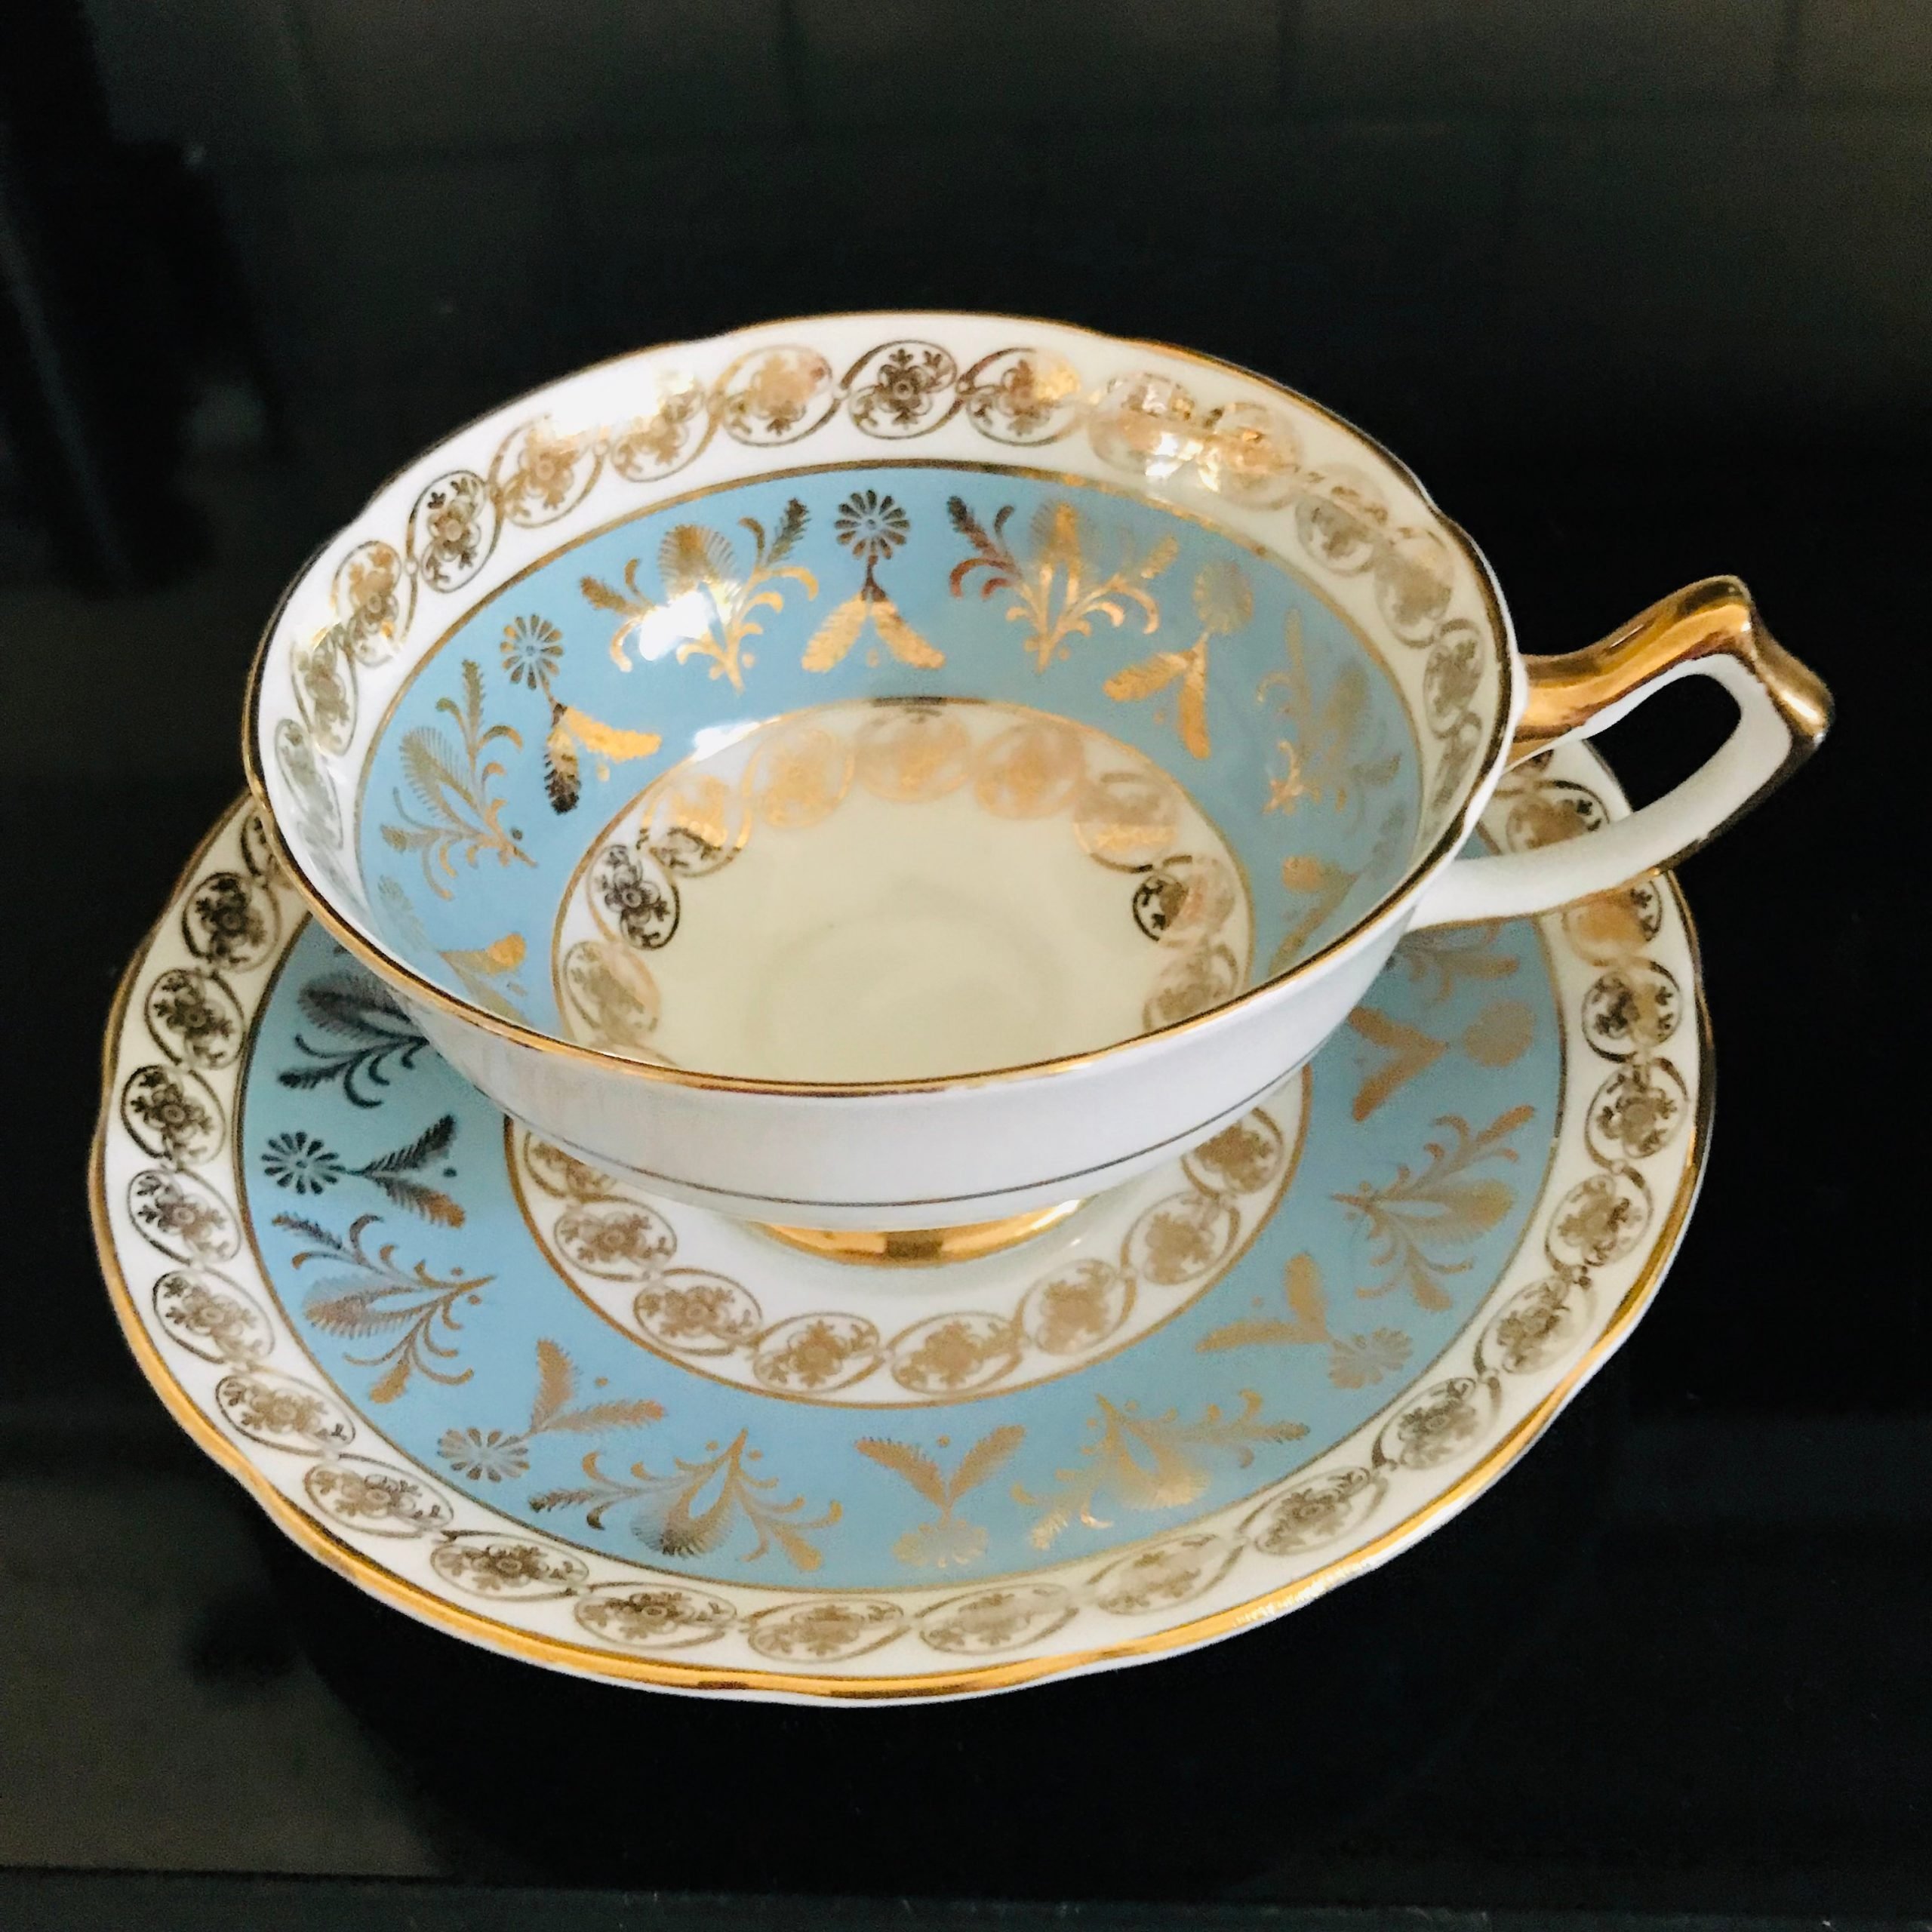 Salisbury Tea Cup And Saucer England Fine Bone China Blue And Gold 3802r Gold Trim Farmhouse Cottage Collectible Display Serving Carol S True Vintage And Antiques